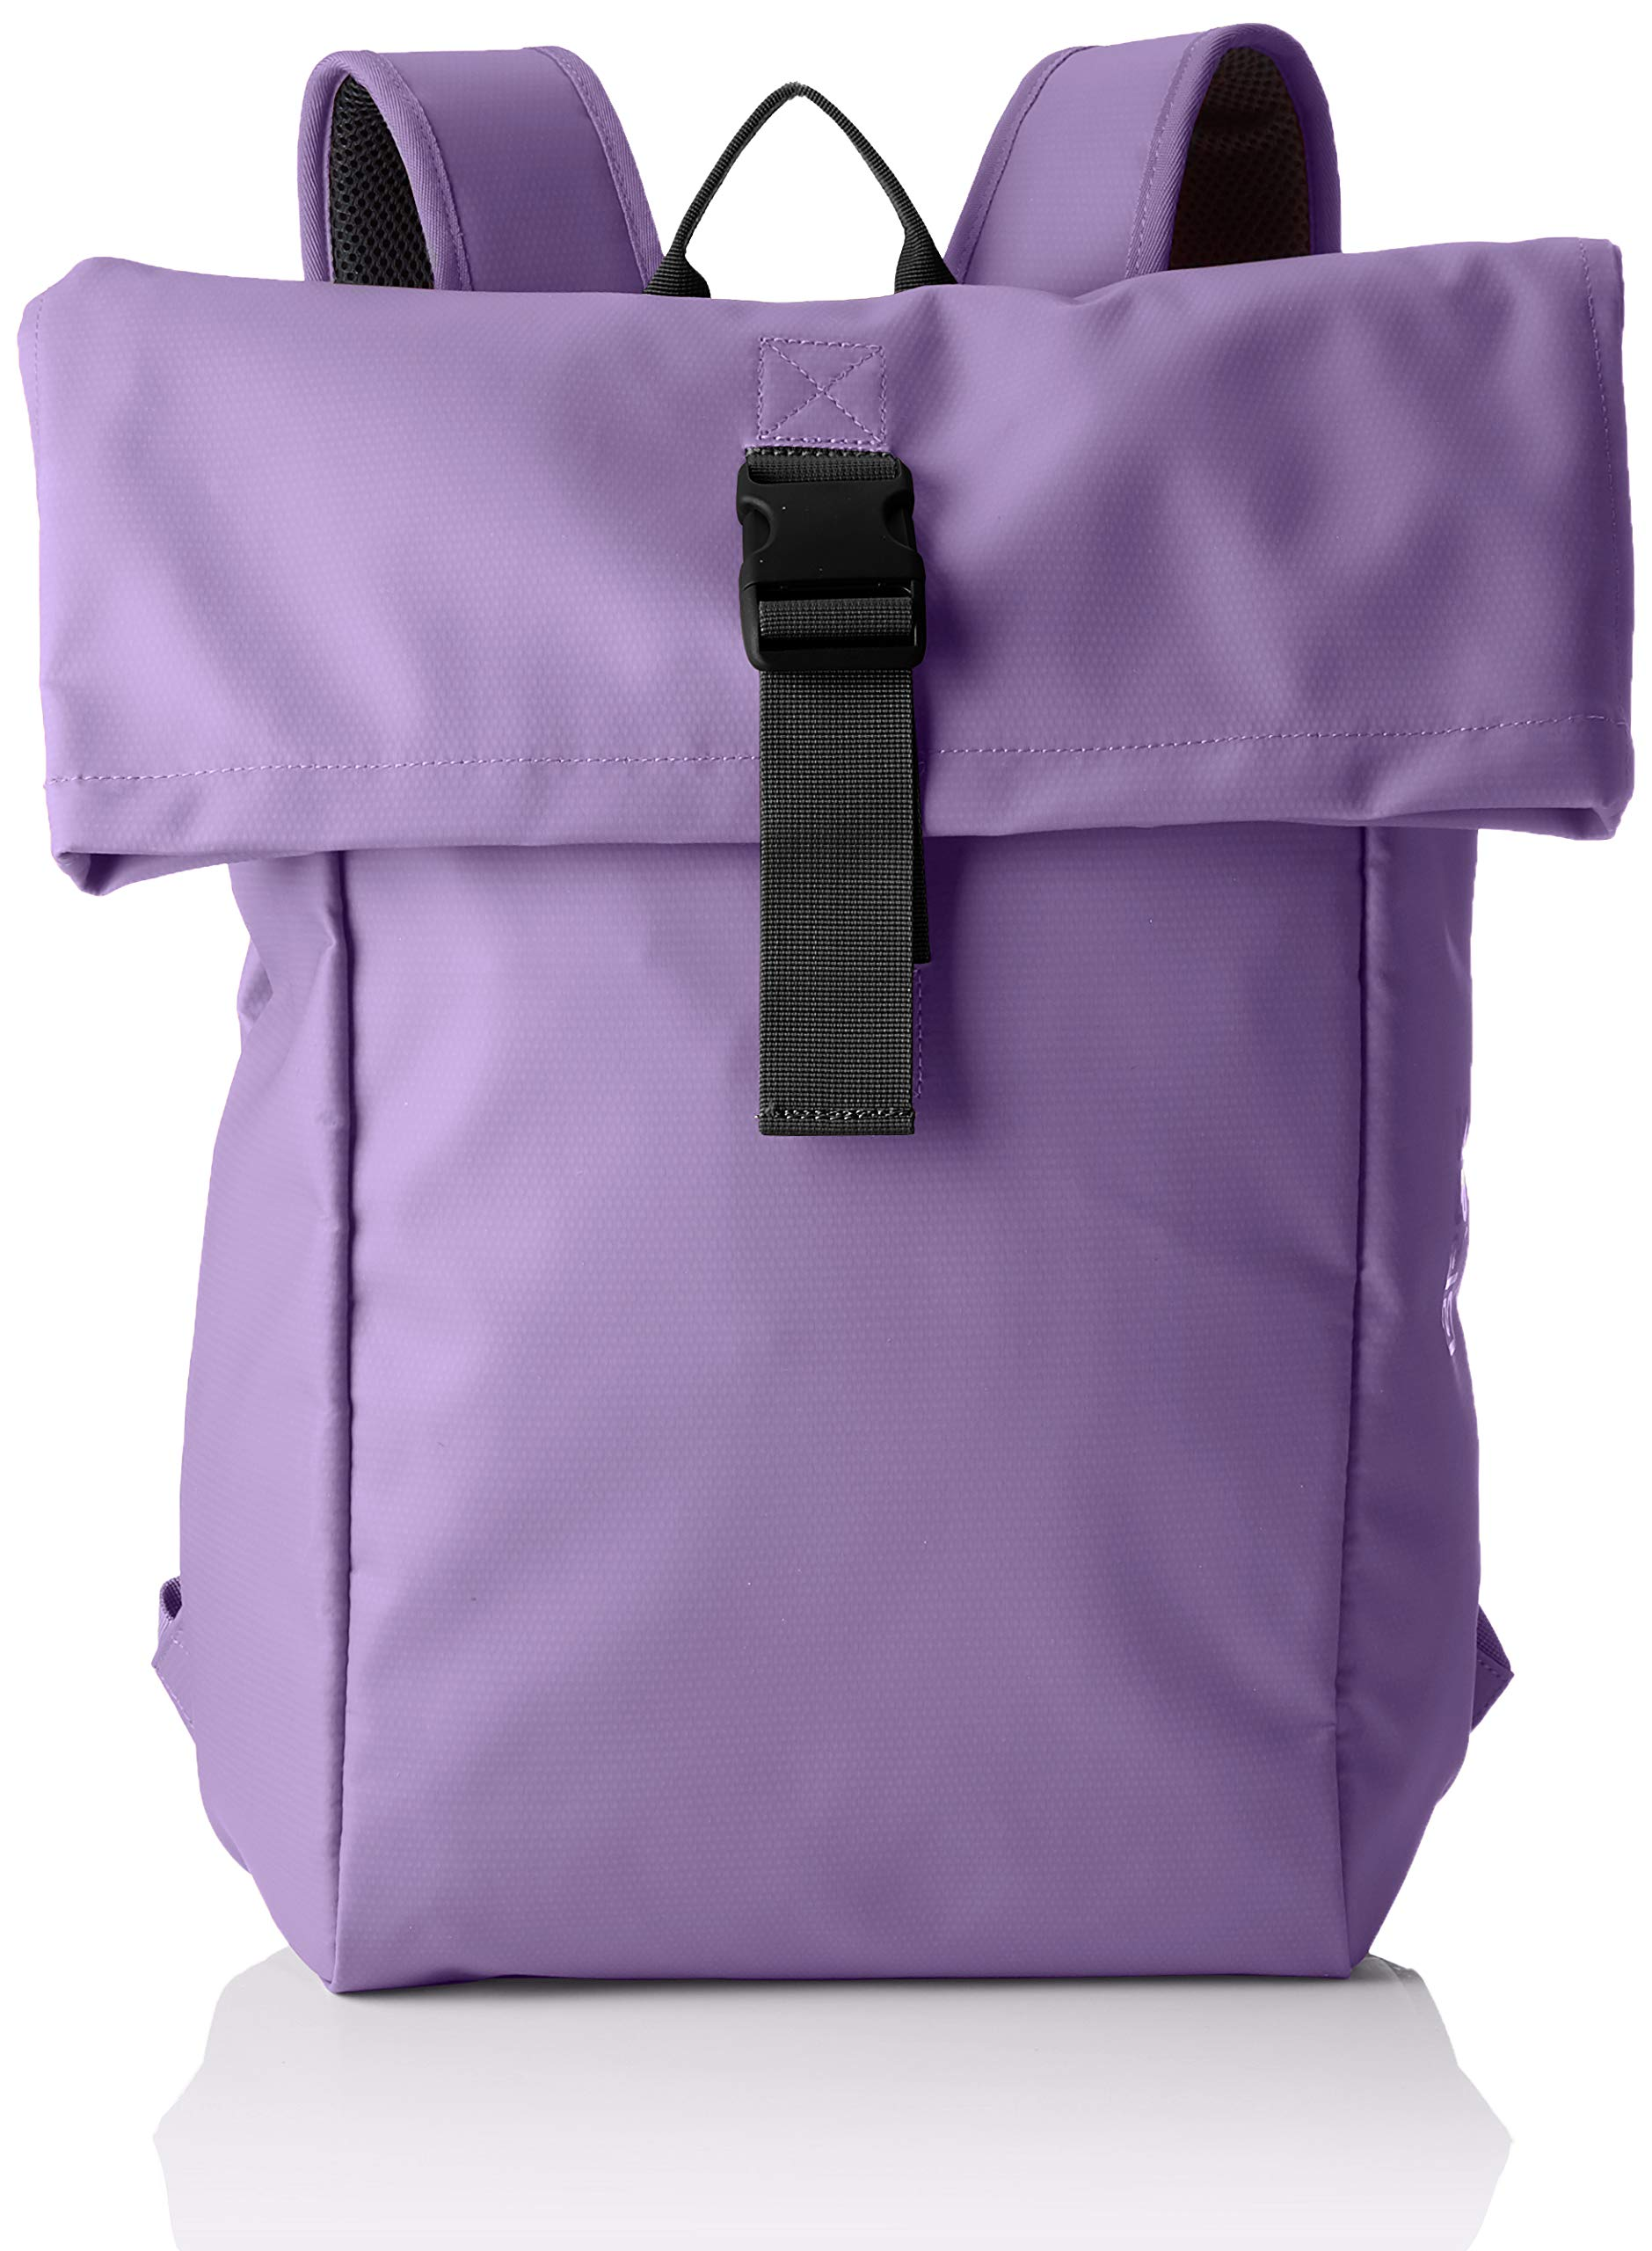 Punch purple12x46x30 T Dos Collection X Mixte M S19Sacs Bree AdulteVioletpat 93PatPurpleBackpack Cmb H À nNwyvm8OP0